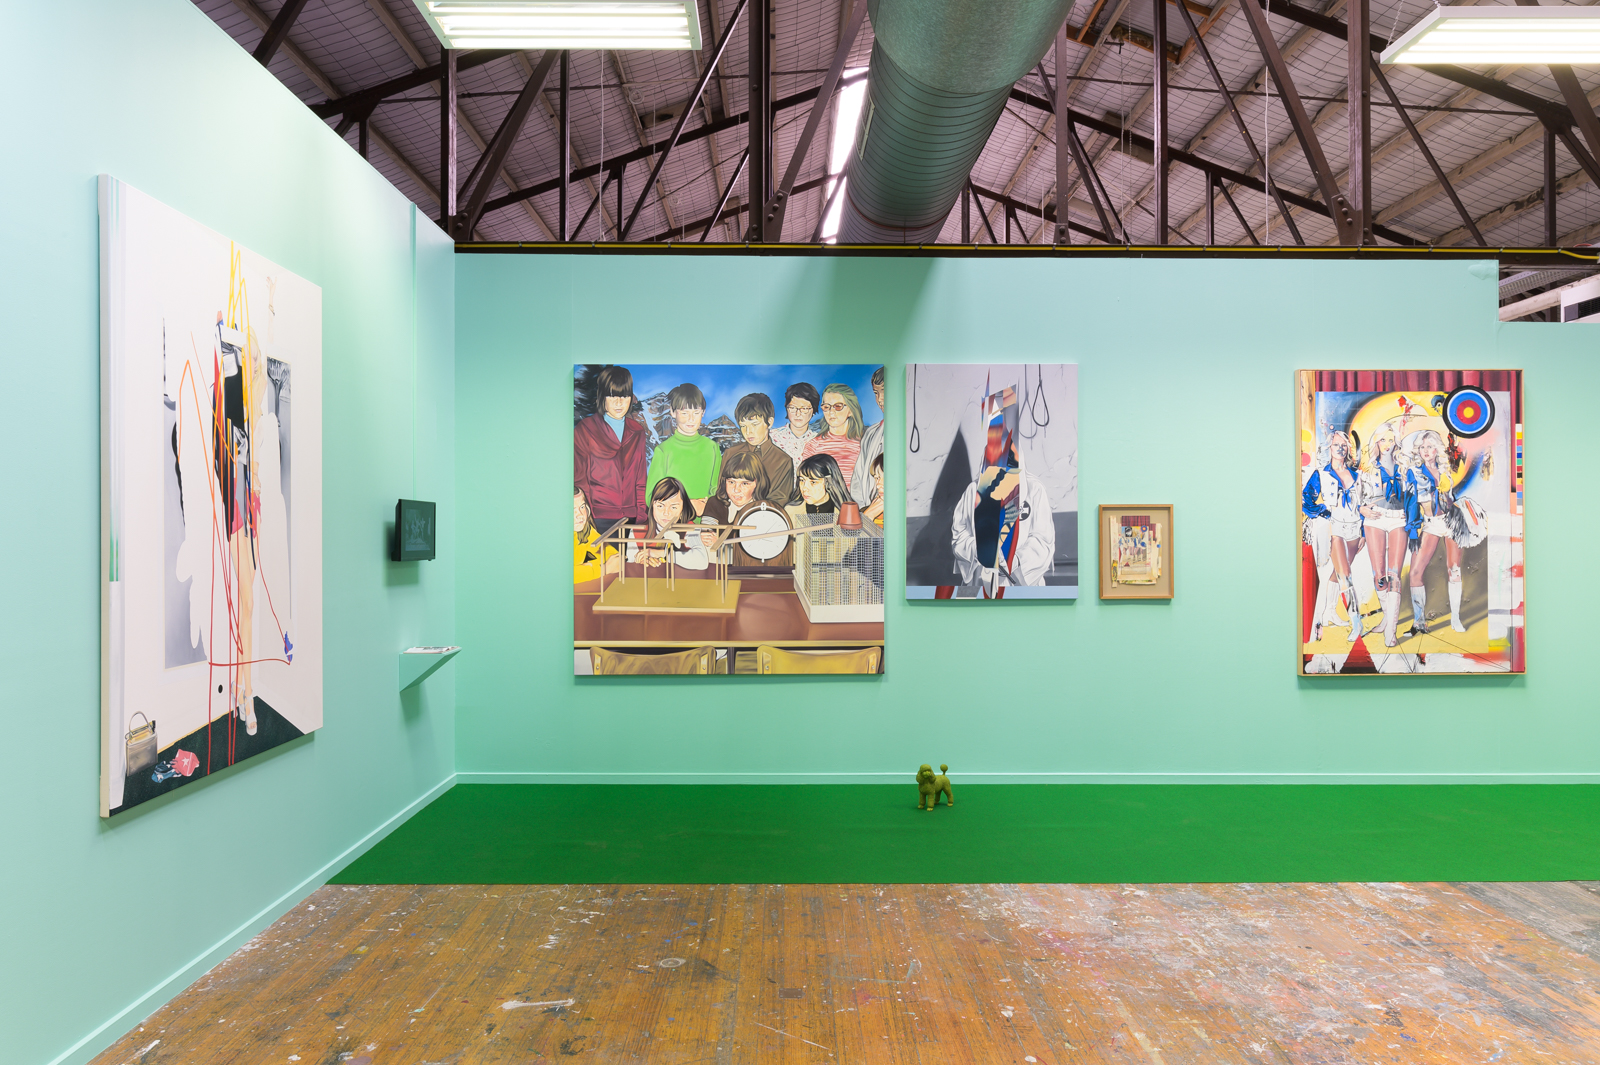 Installation view of The Secret Doctrine. Victorian College of the Arts, University of Melbourne. 2019. Photo by Aaron Christopher Rees.